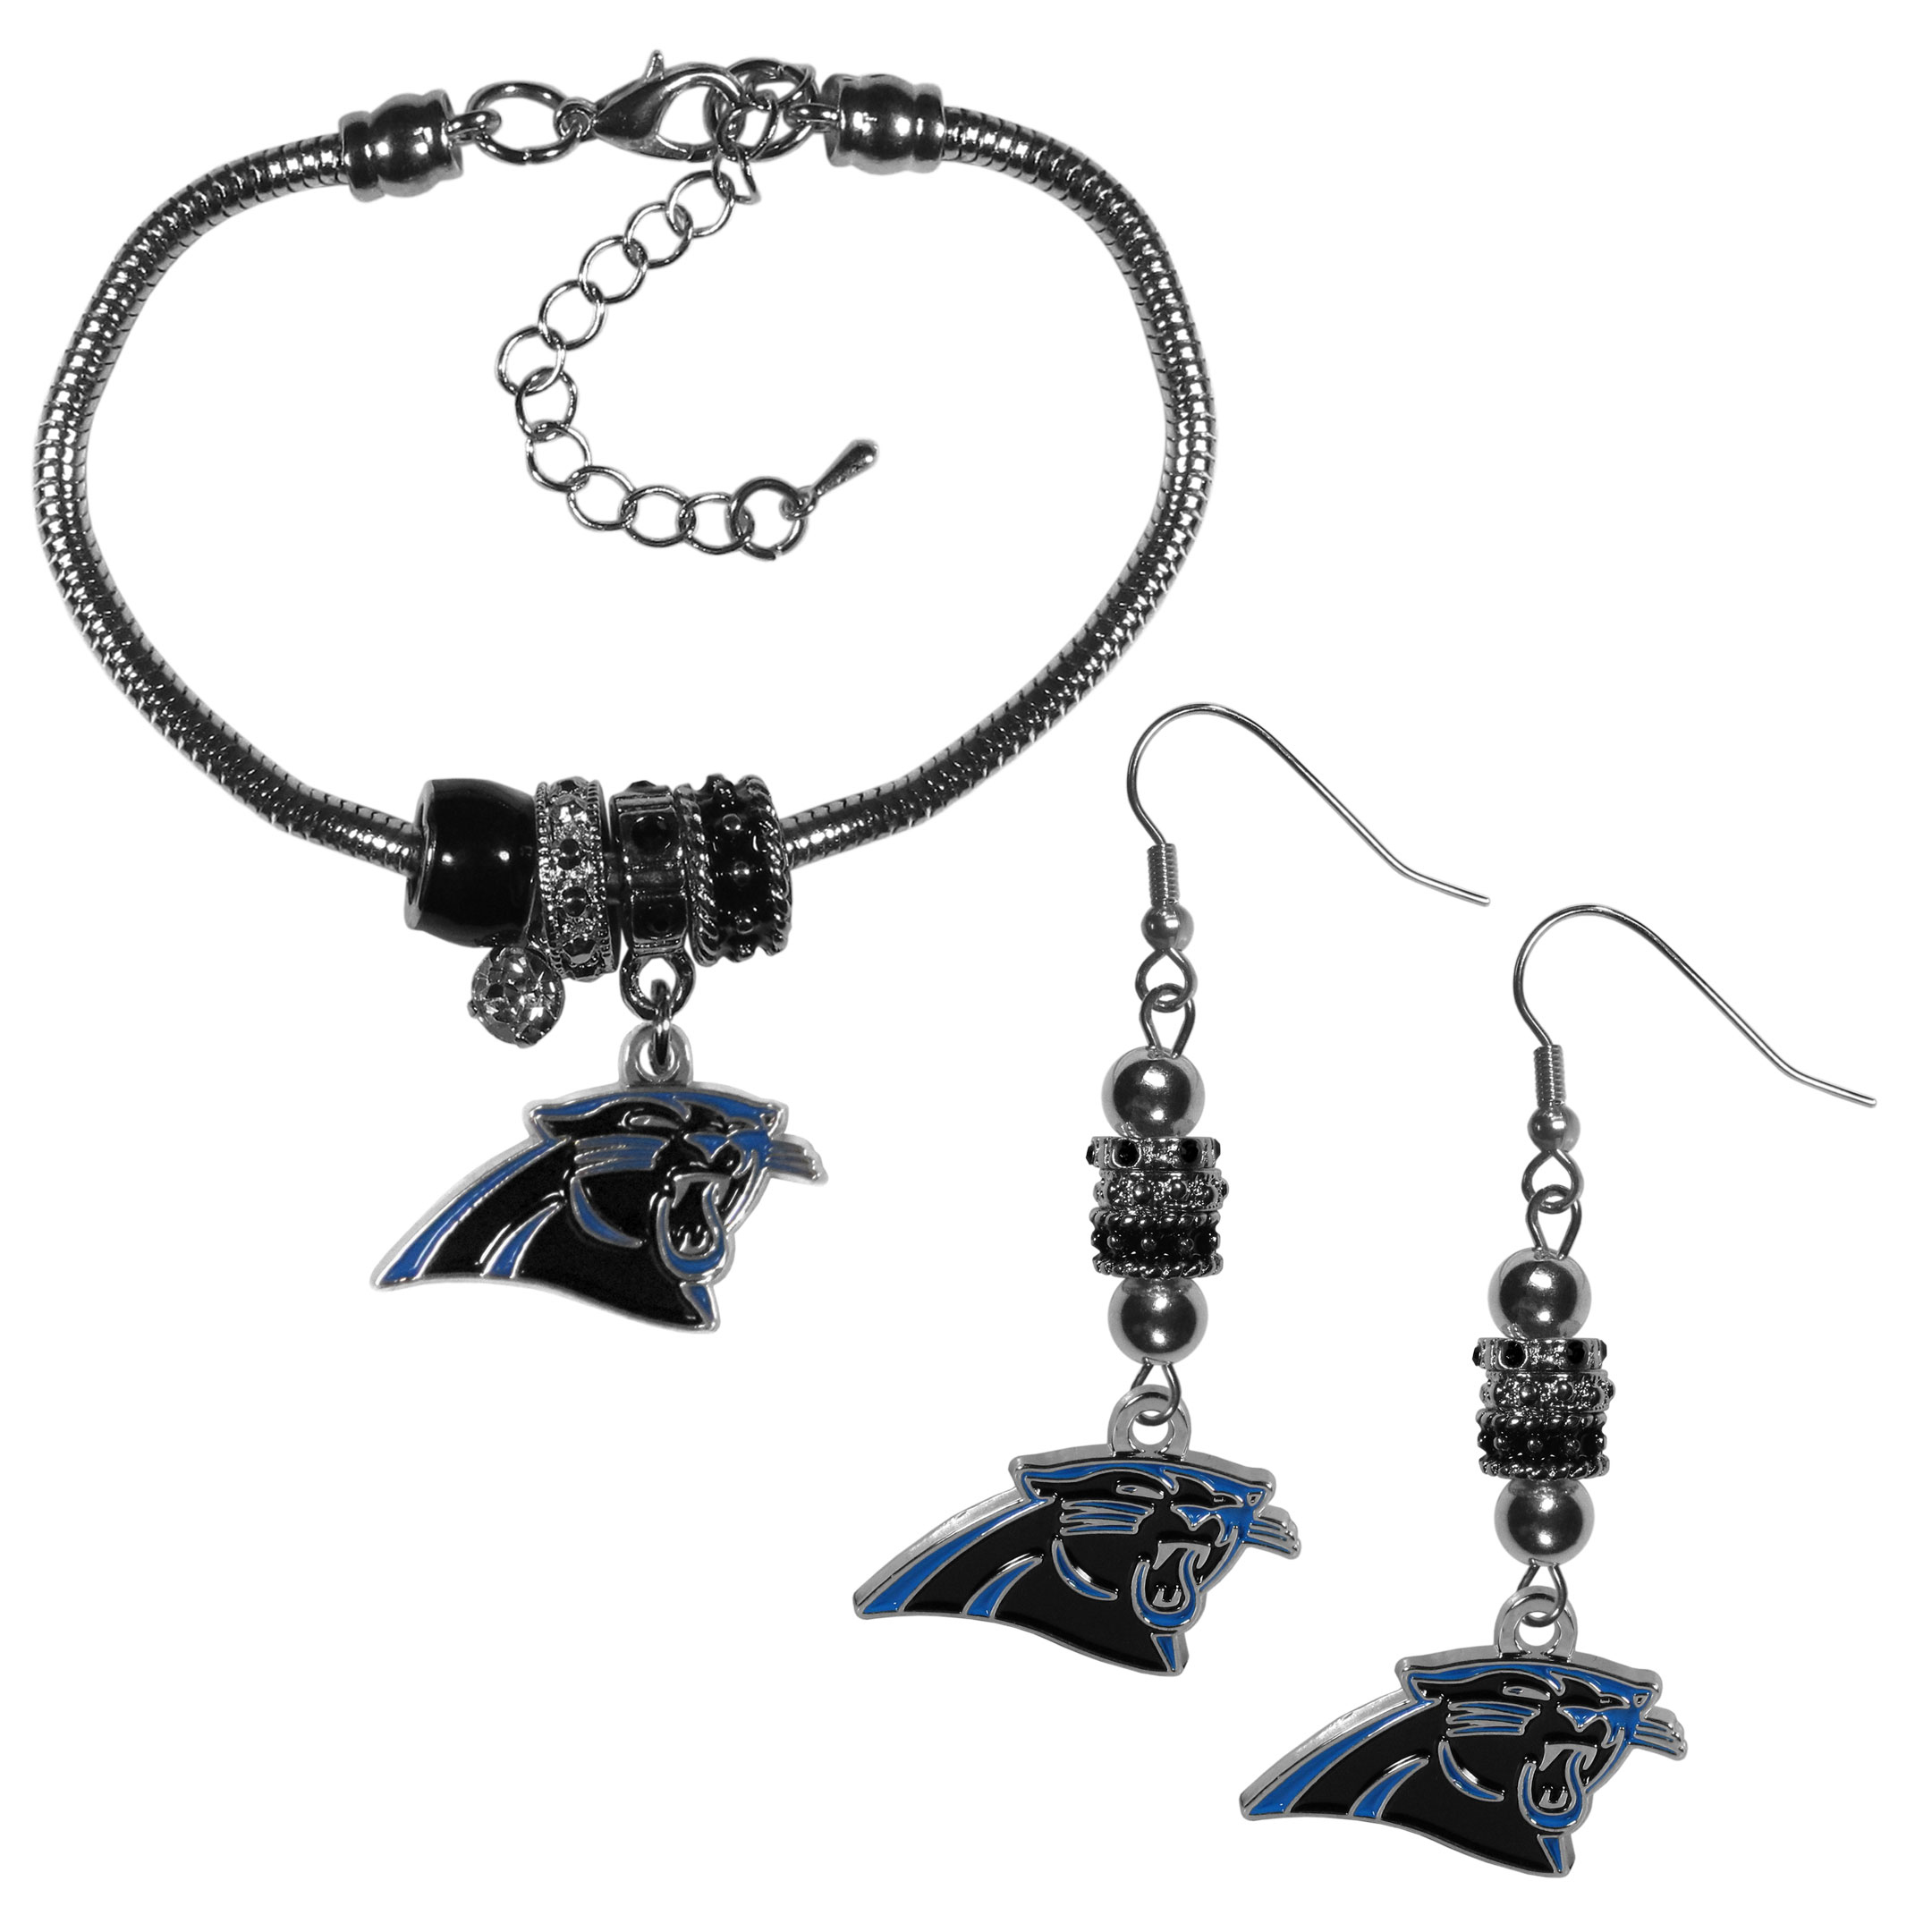 Carolina Panthers Euro Bead Earrings and Bracelet Set - We combine the popular Euro bead style with your love of the Carolina Panthers with this beautiful jewelry set that includes earrings and a matching bracelet. The stylish earrings feature hypoallergenic, nickel free fishhook posts and 3 team colored Euro beads and a metal team charm. The matching snake chain bracelet is 7.5 inches long with a 2 inch extender and 4 Euro beads with a rhinestone charm and team charm.